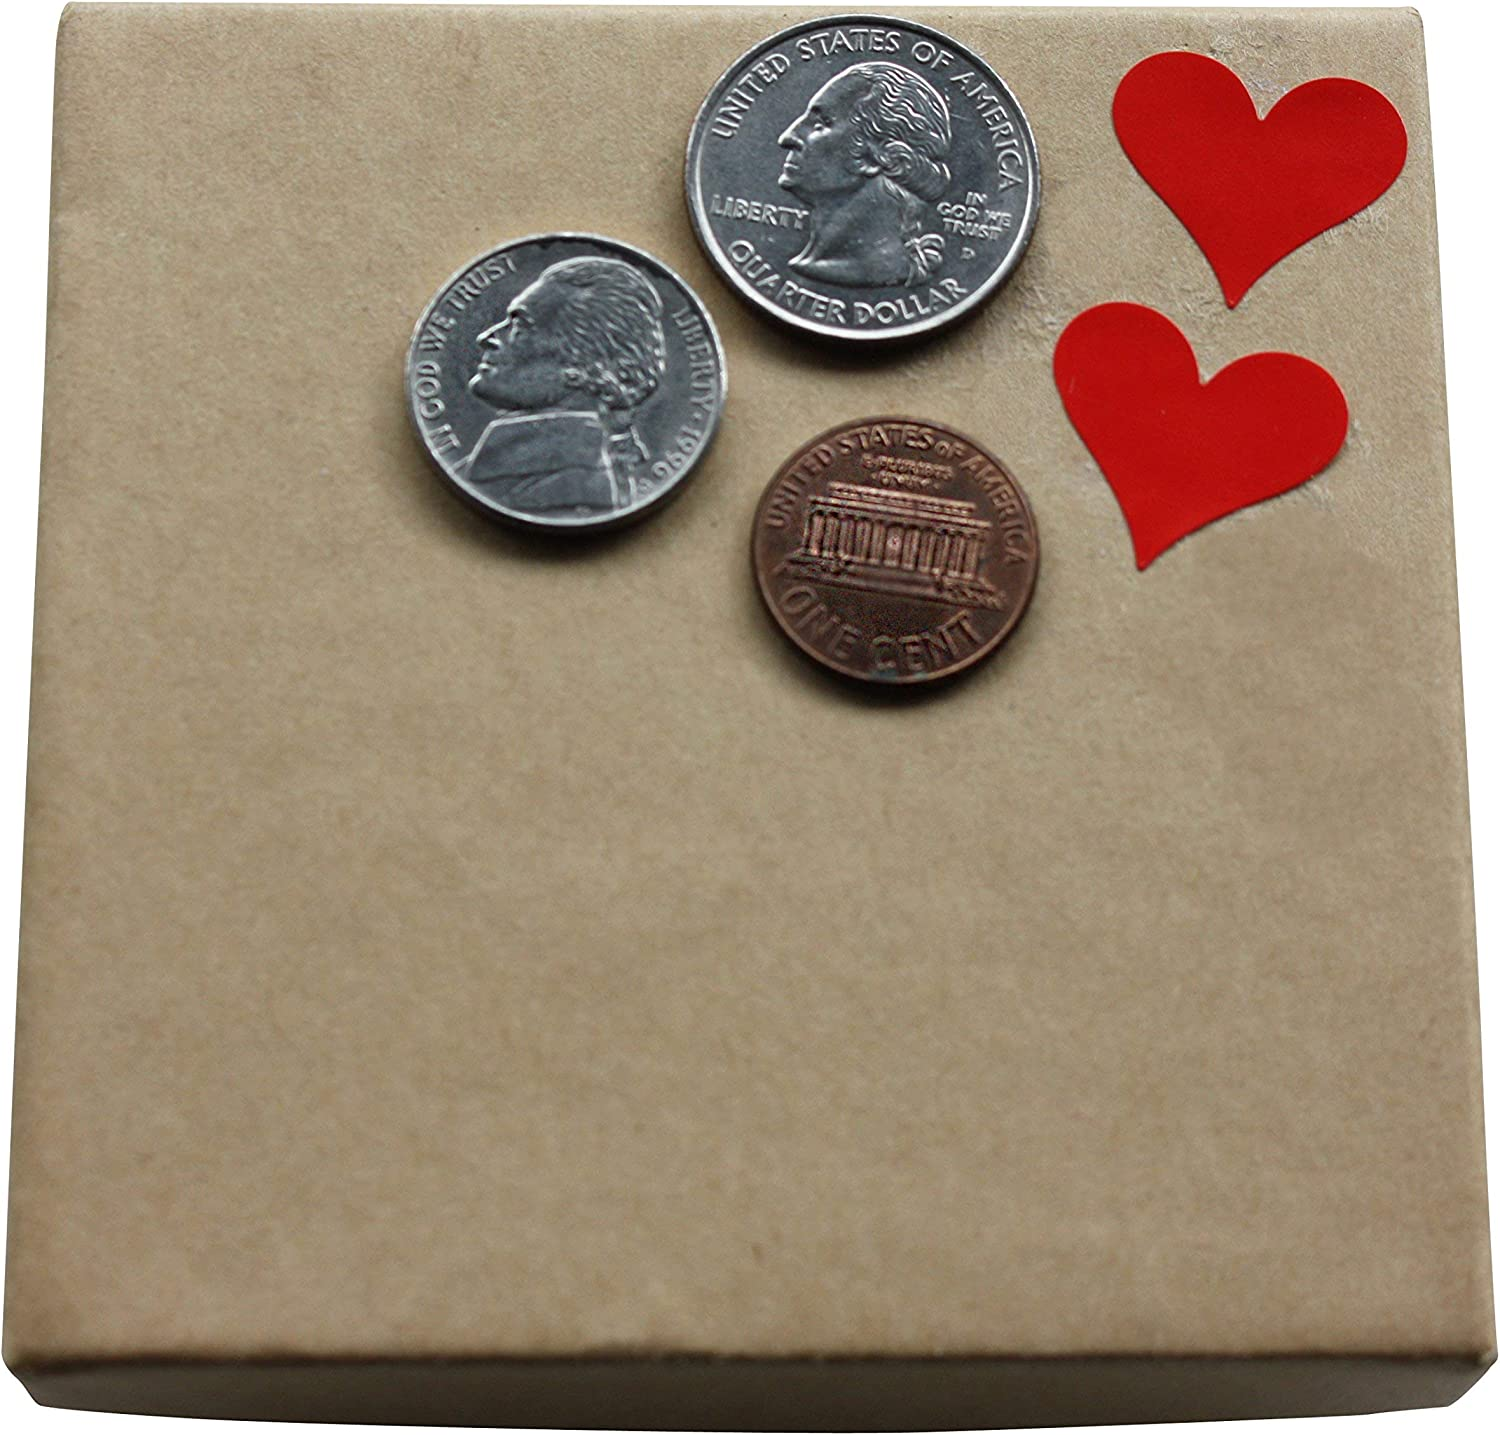 and Gift Boxes 19 mm Royal Green Heart Shaped Stickers 3//4 inch Black Stickers for Party Favors 200 Pack Goodie Bags